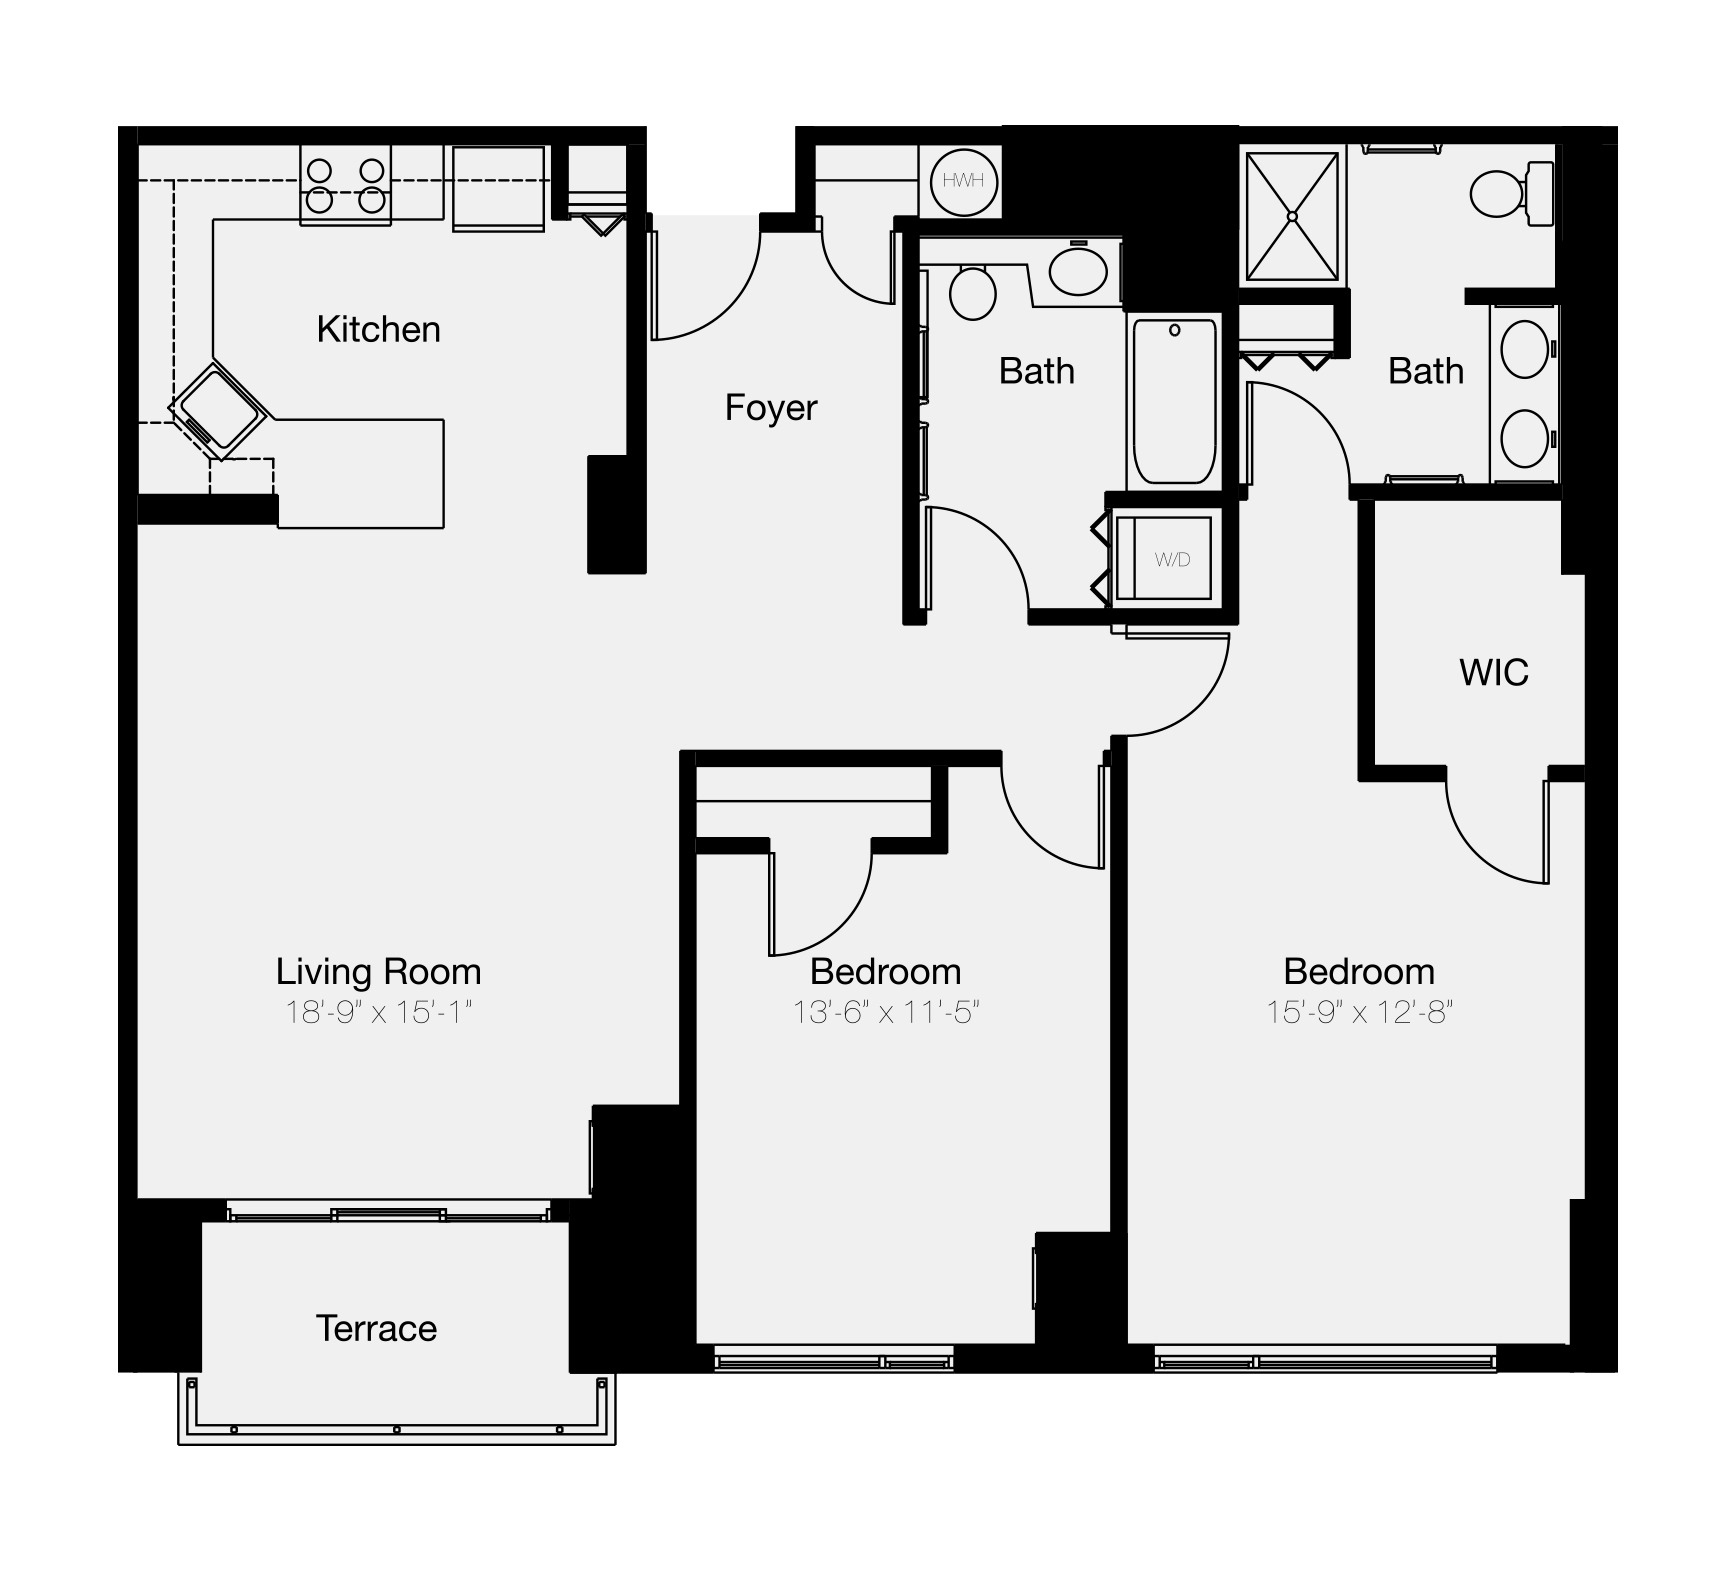 Two-bedroom floor plan of Philadelphia waterfront condo for sale